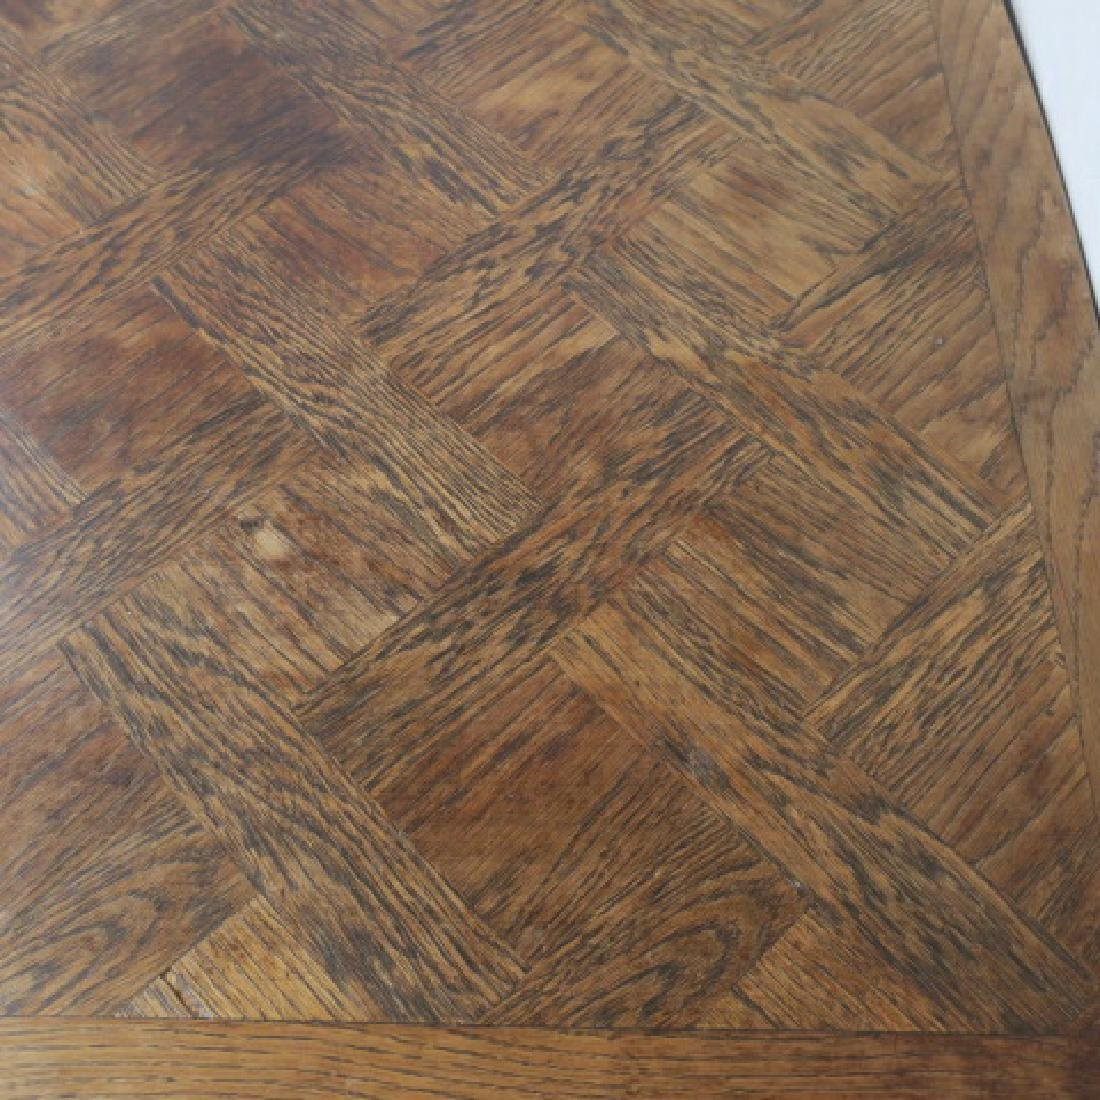 Modern Rectangular Parquet Dining or Project Table: - 3